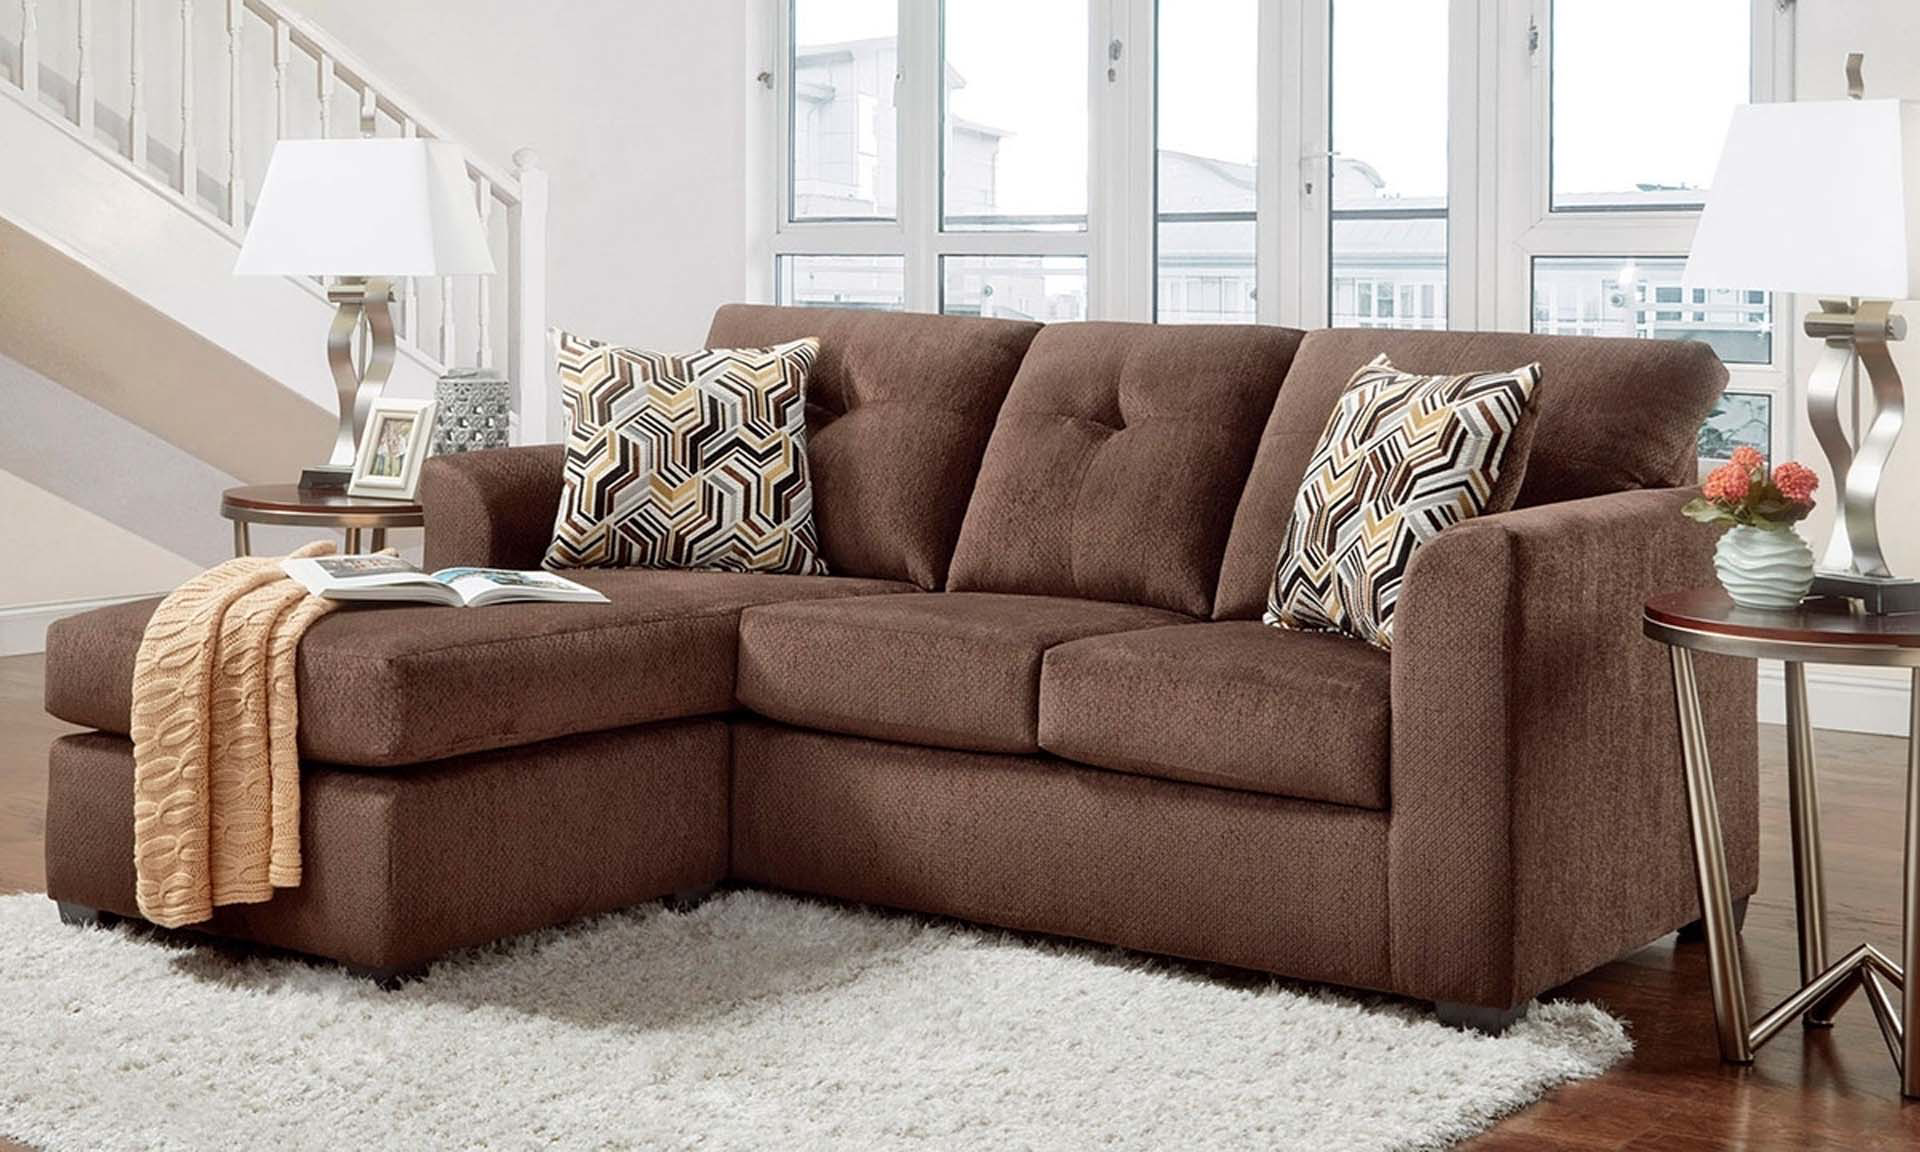 Sofa With Chaise In Chocolate Brown